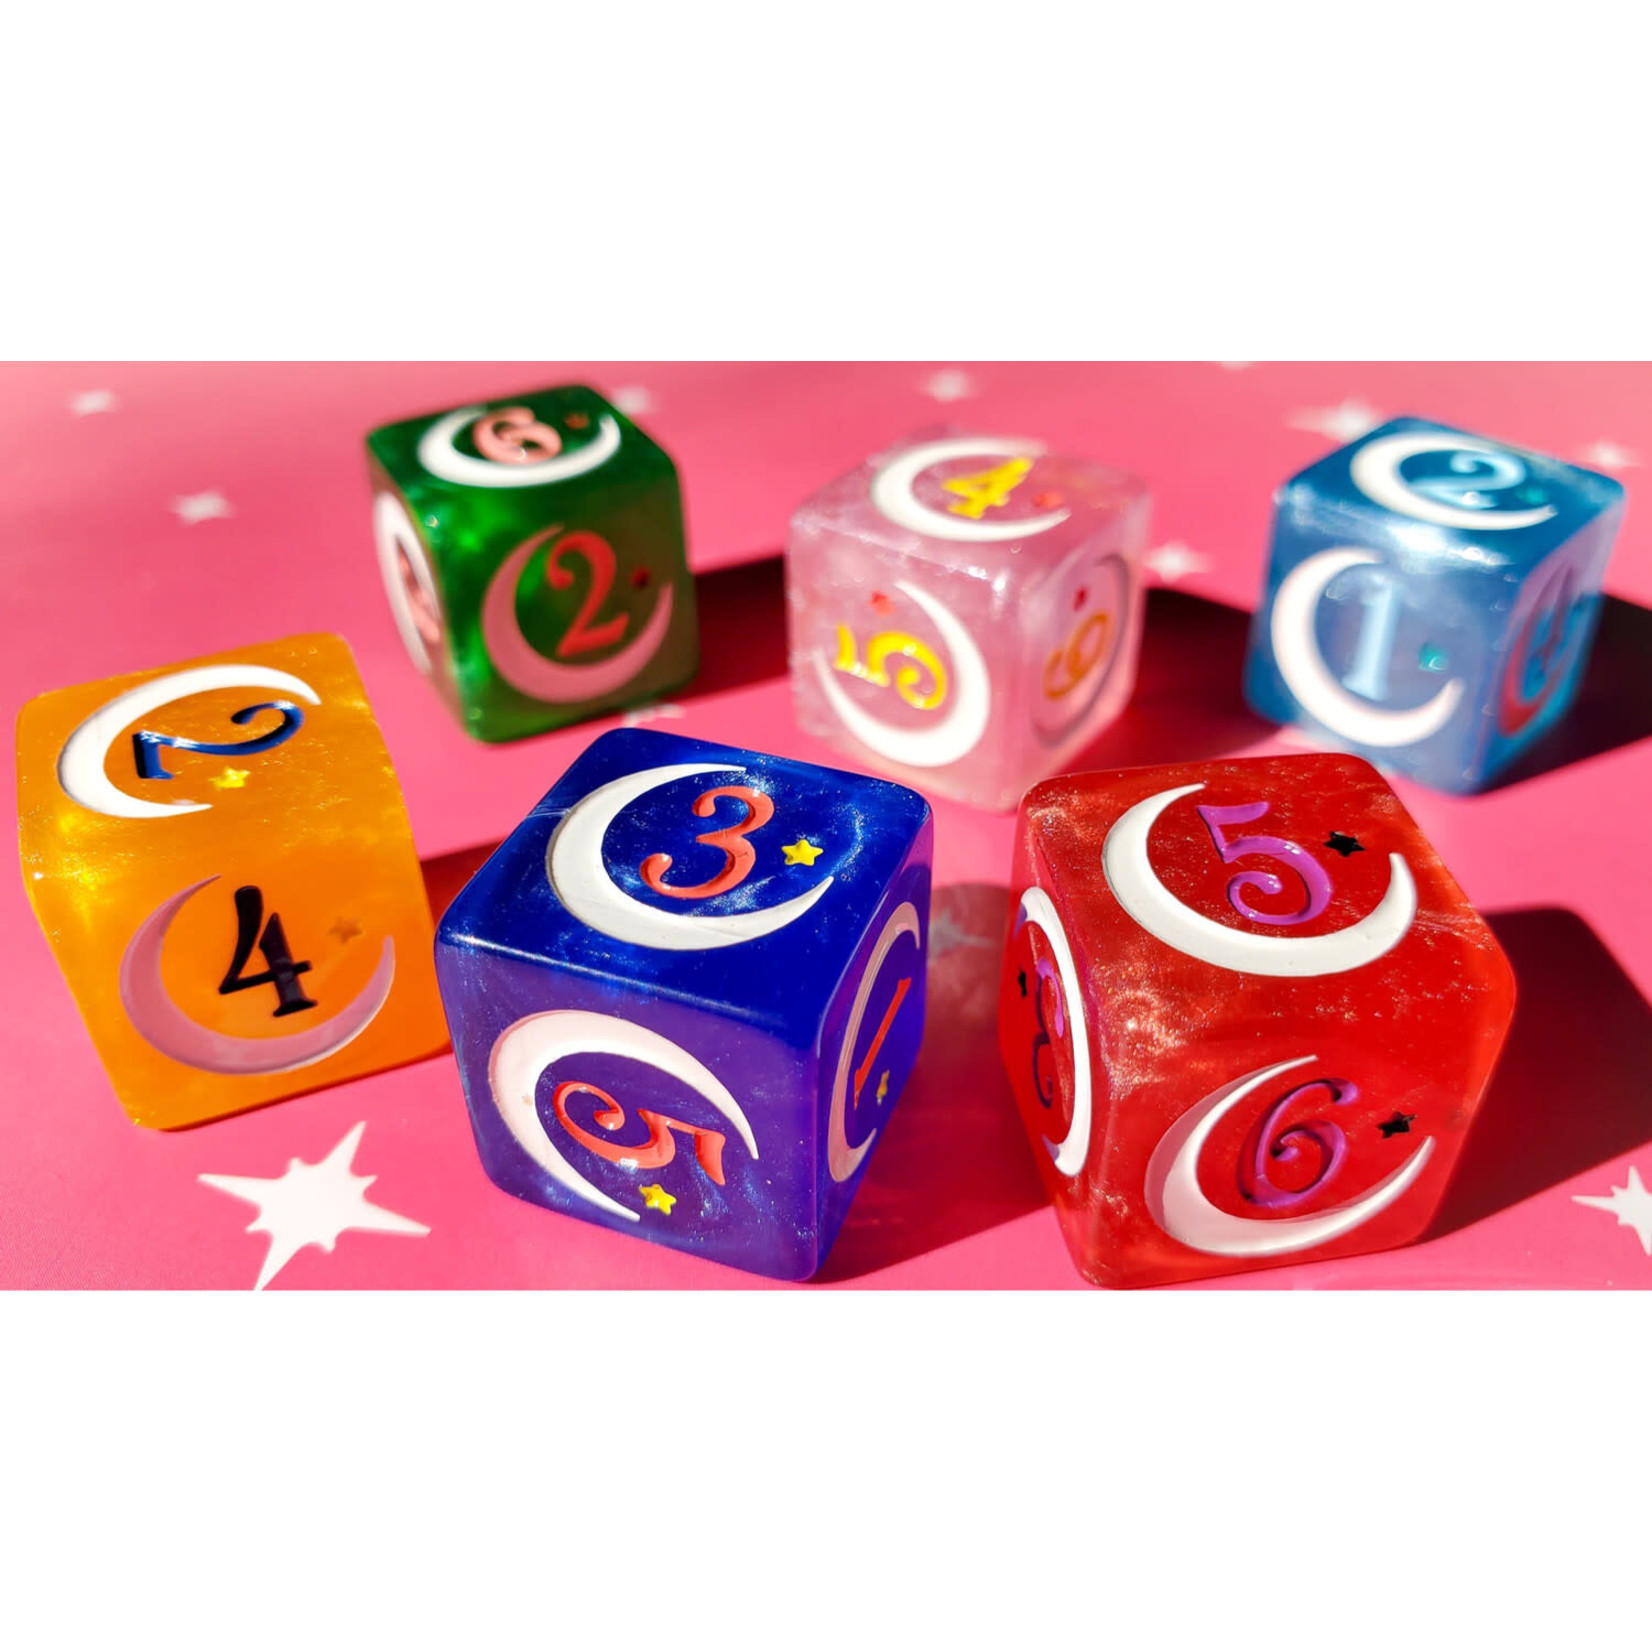 Magical Girl Dice - Pack of 6 - 18mm